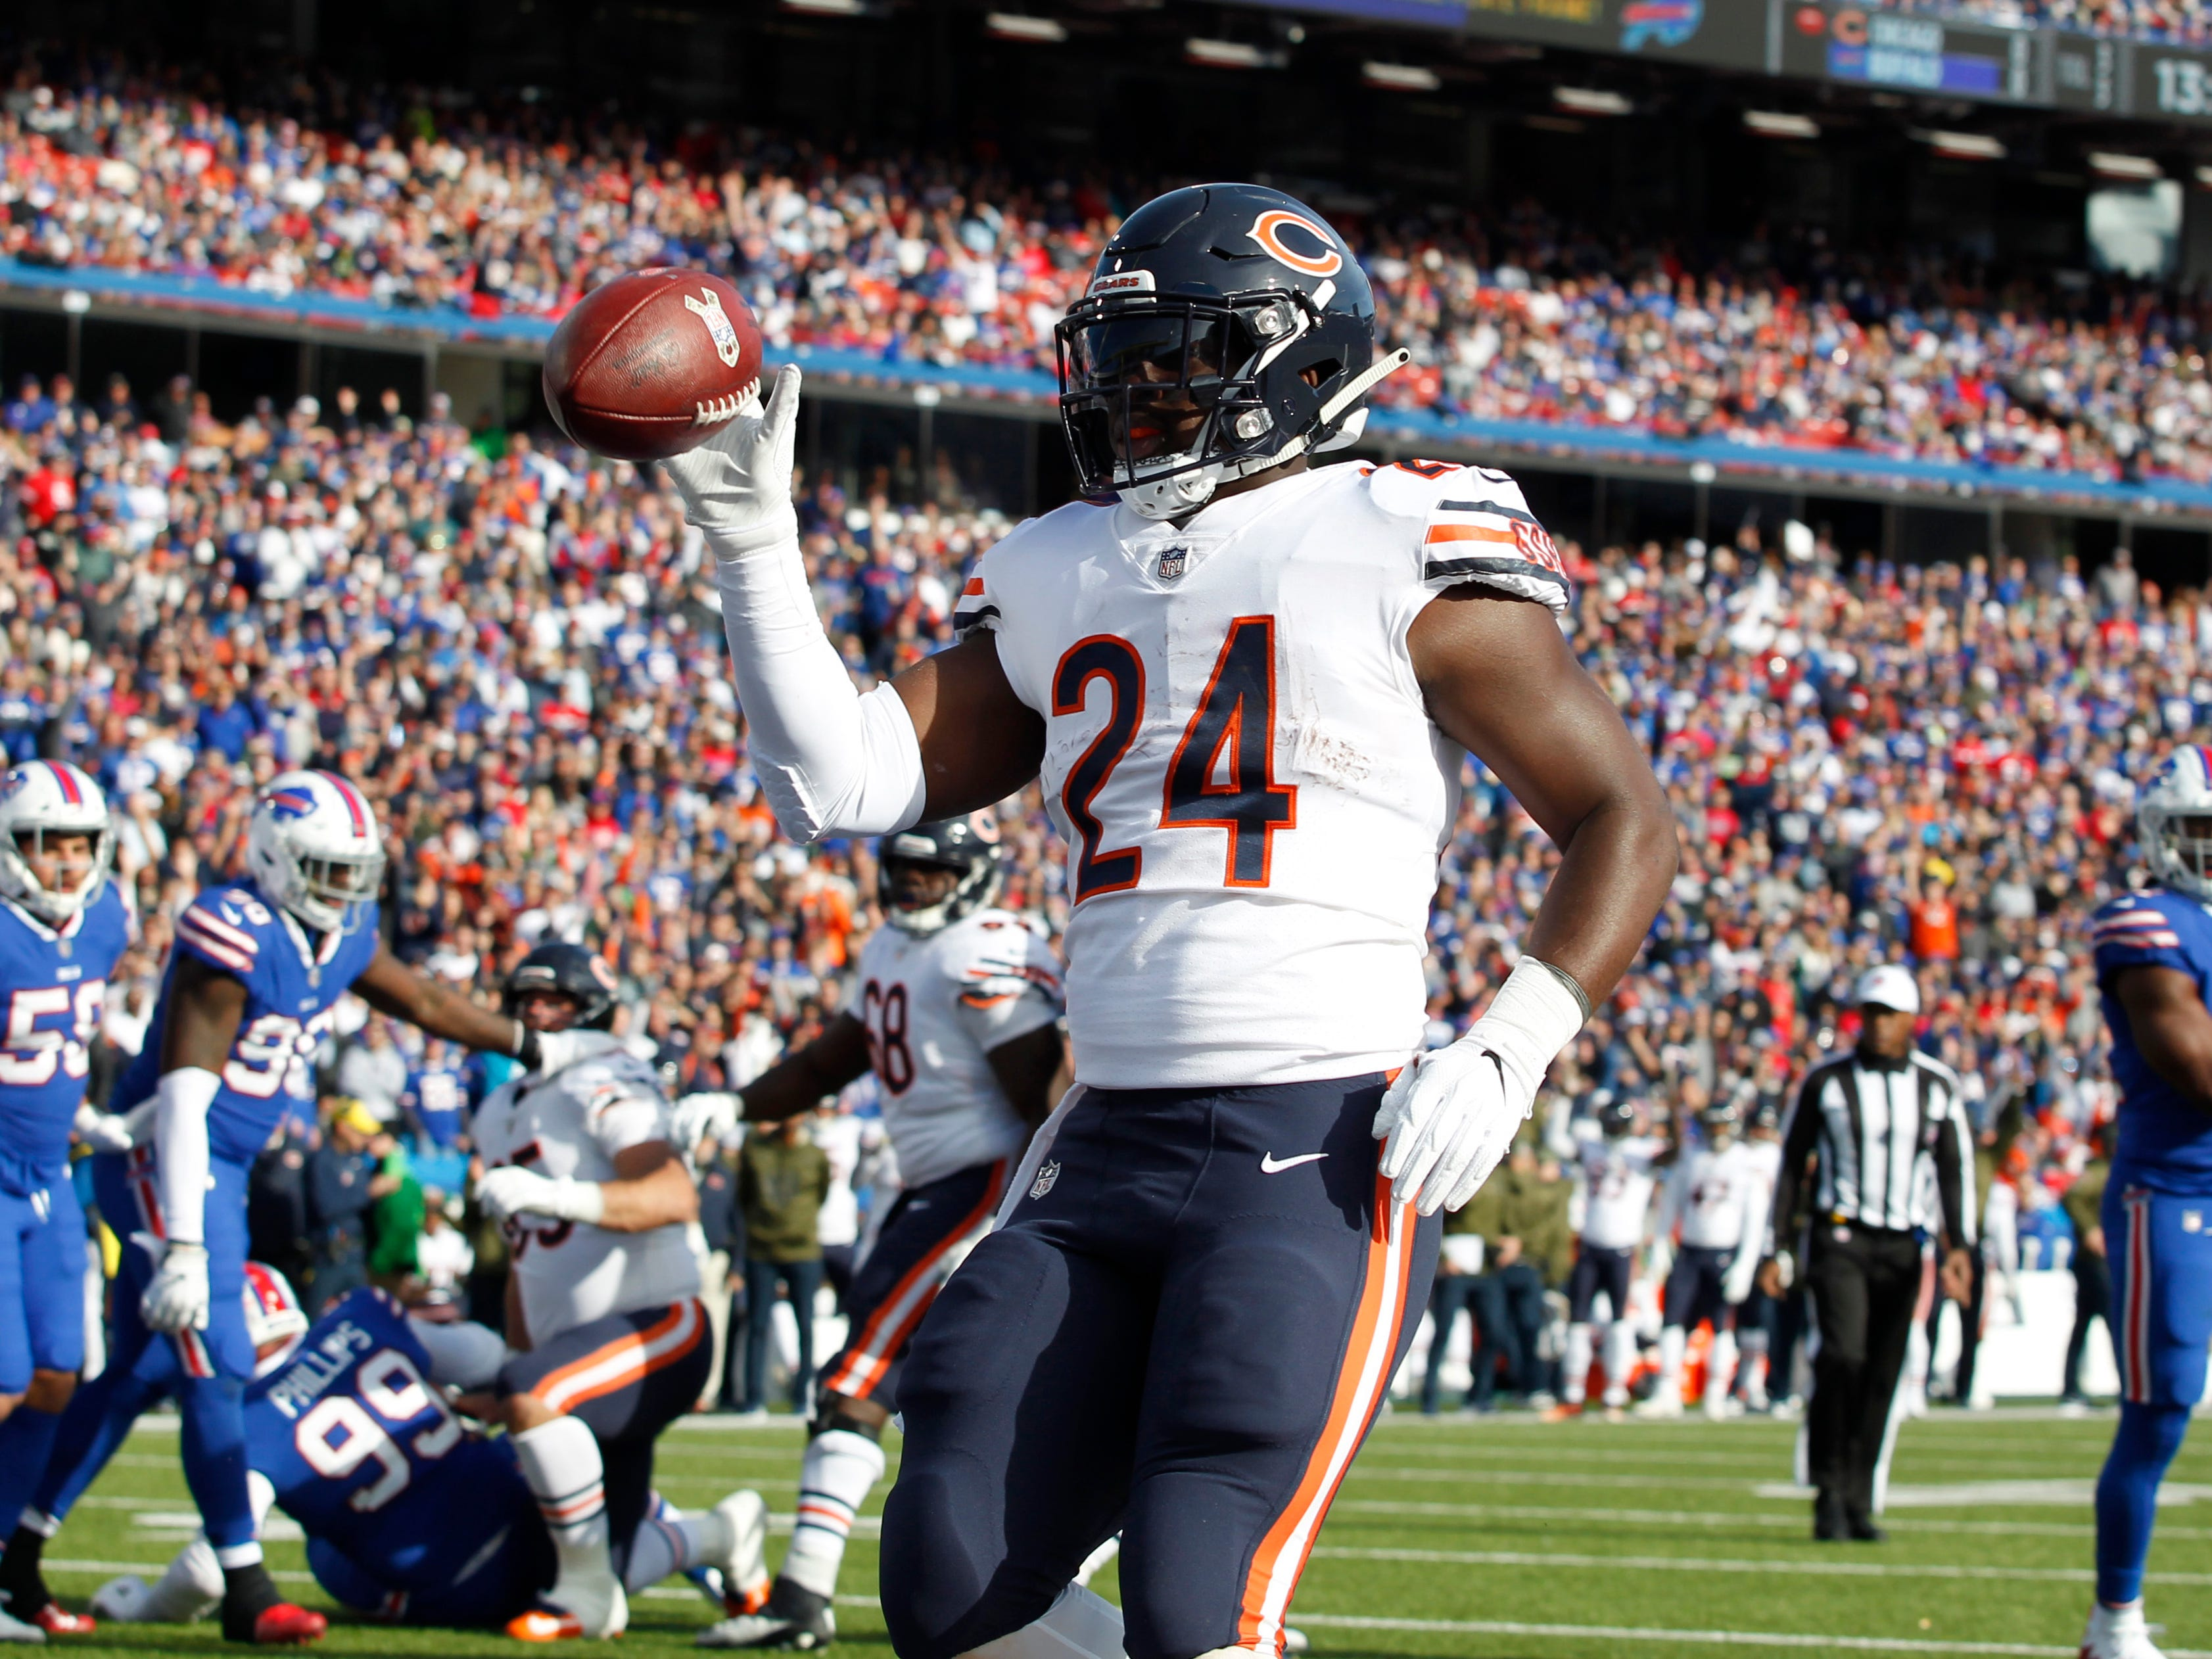 Chicago Bears running back Jordan Howard (24) scores a first-half touchdown against the Buffalo Bills at New Era Field.